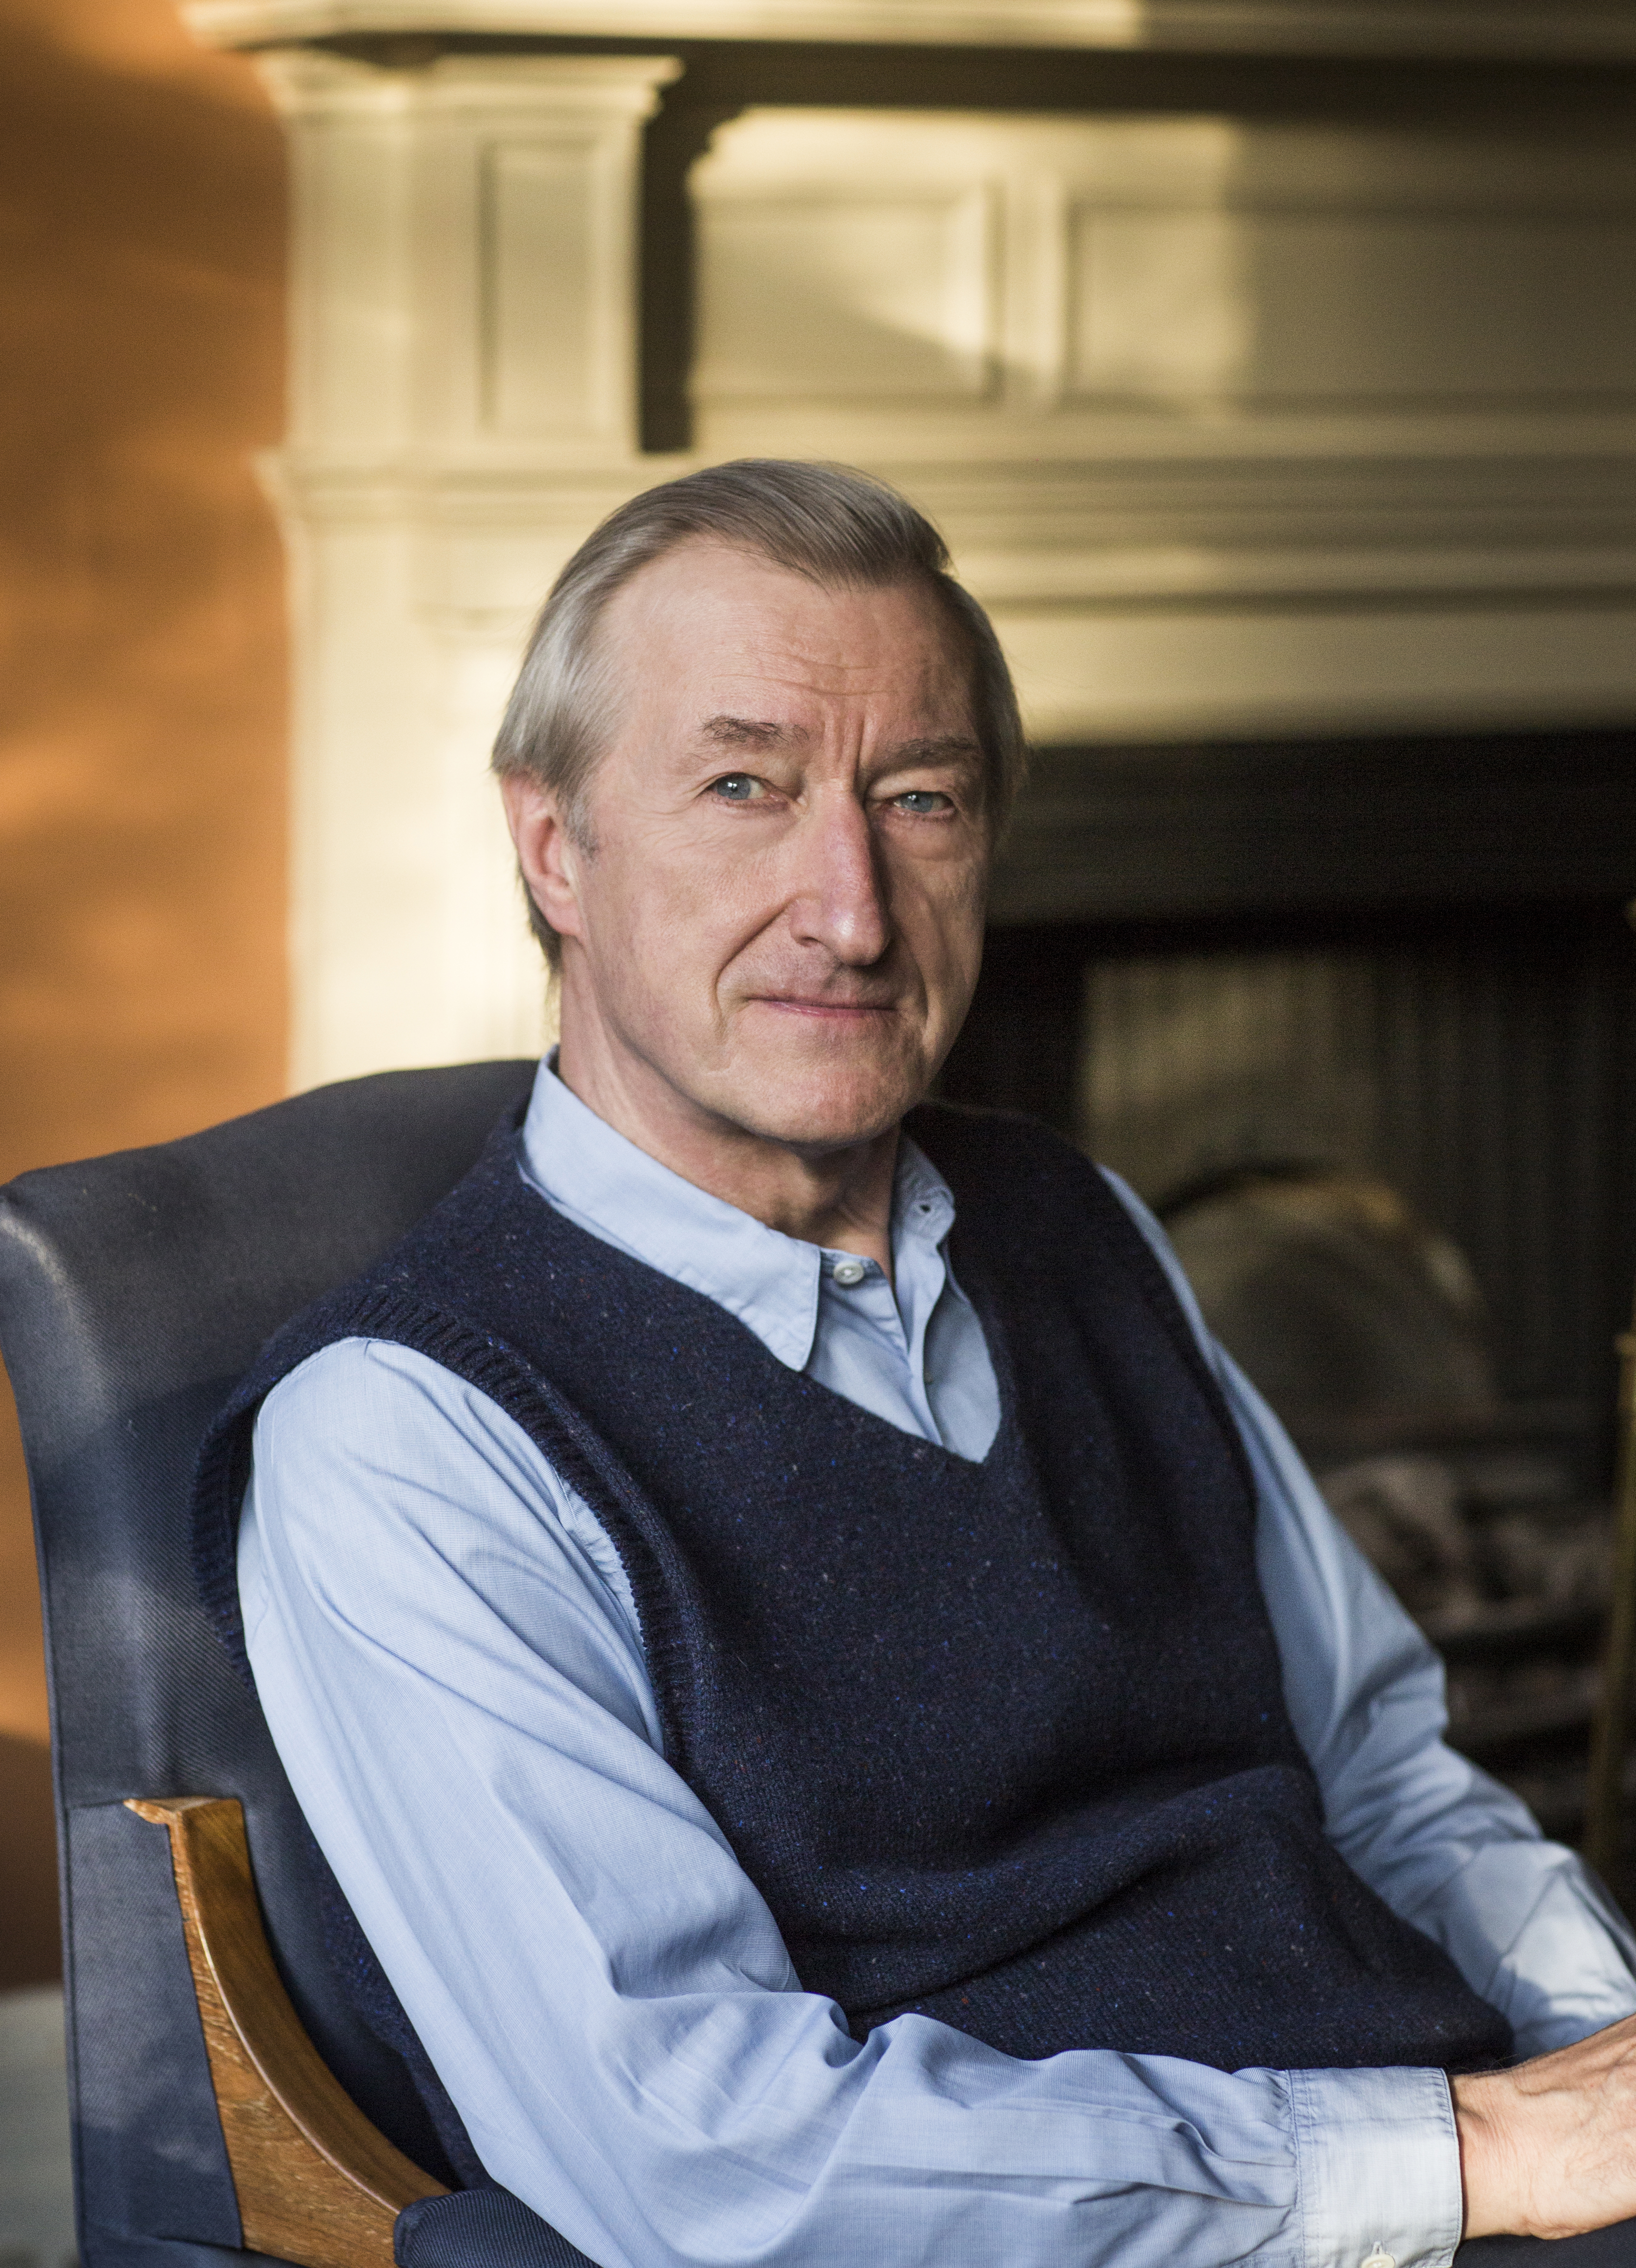 Julian Barnes headshot